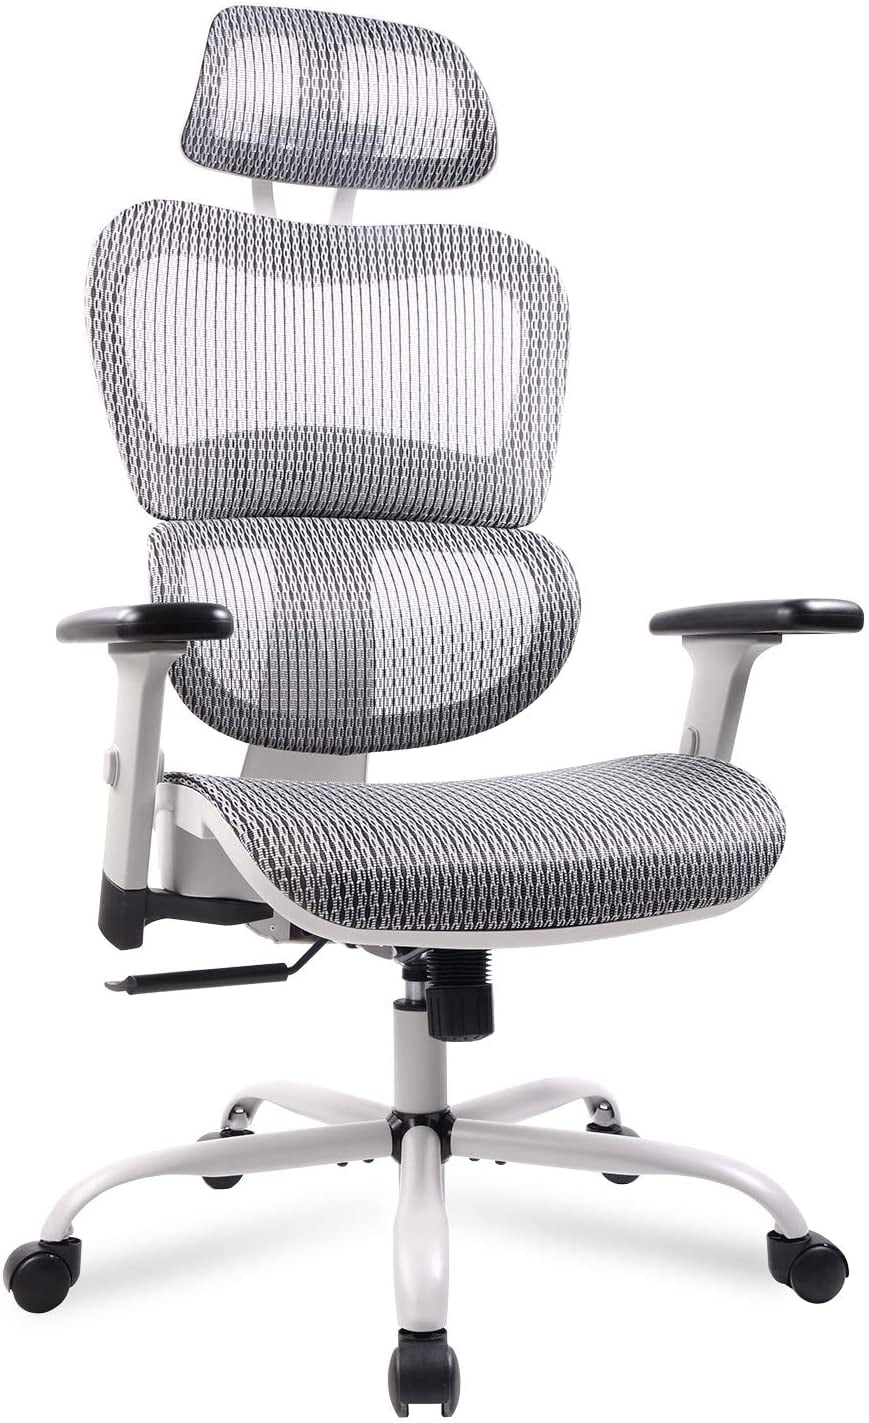 Mesh Office Chair Ergonomic Desk Chair Technical Task Swivel Chair Executive High Back Chair Adjustable Home Chair Gray Walmart Com Walmart Com